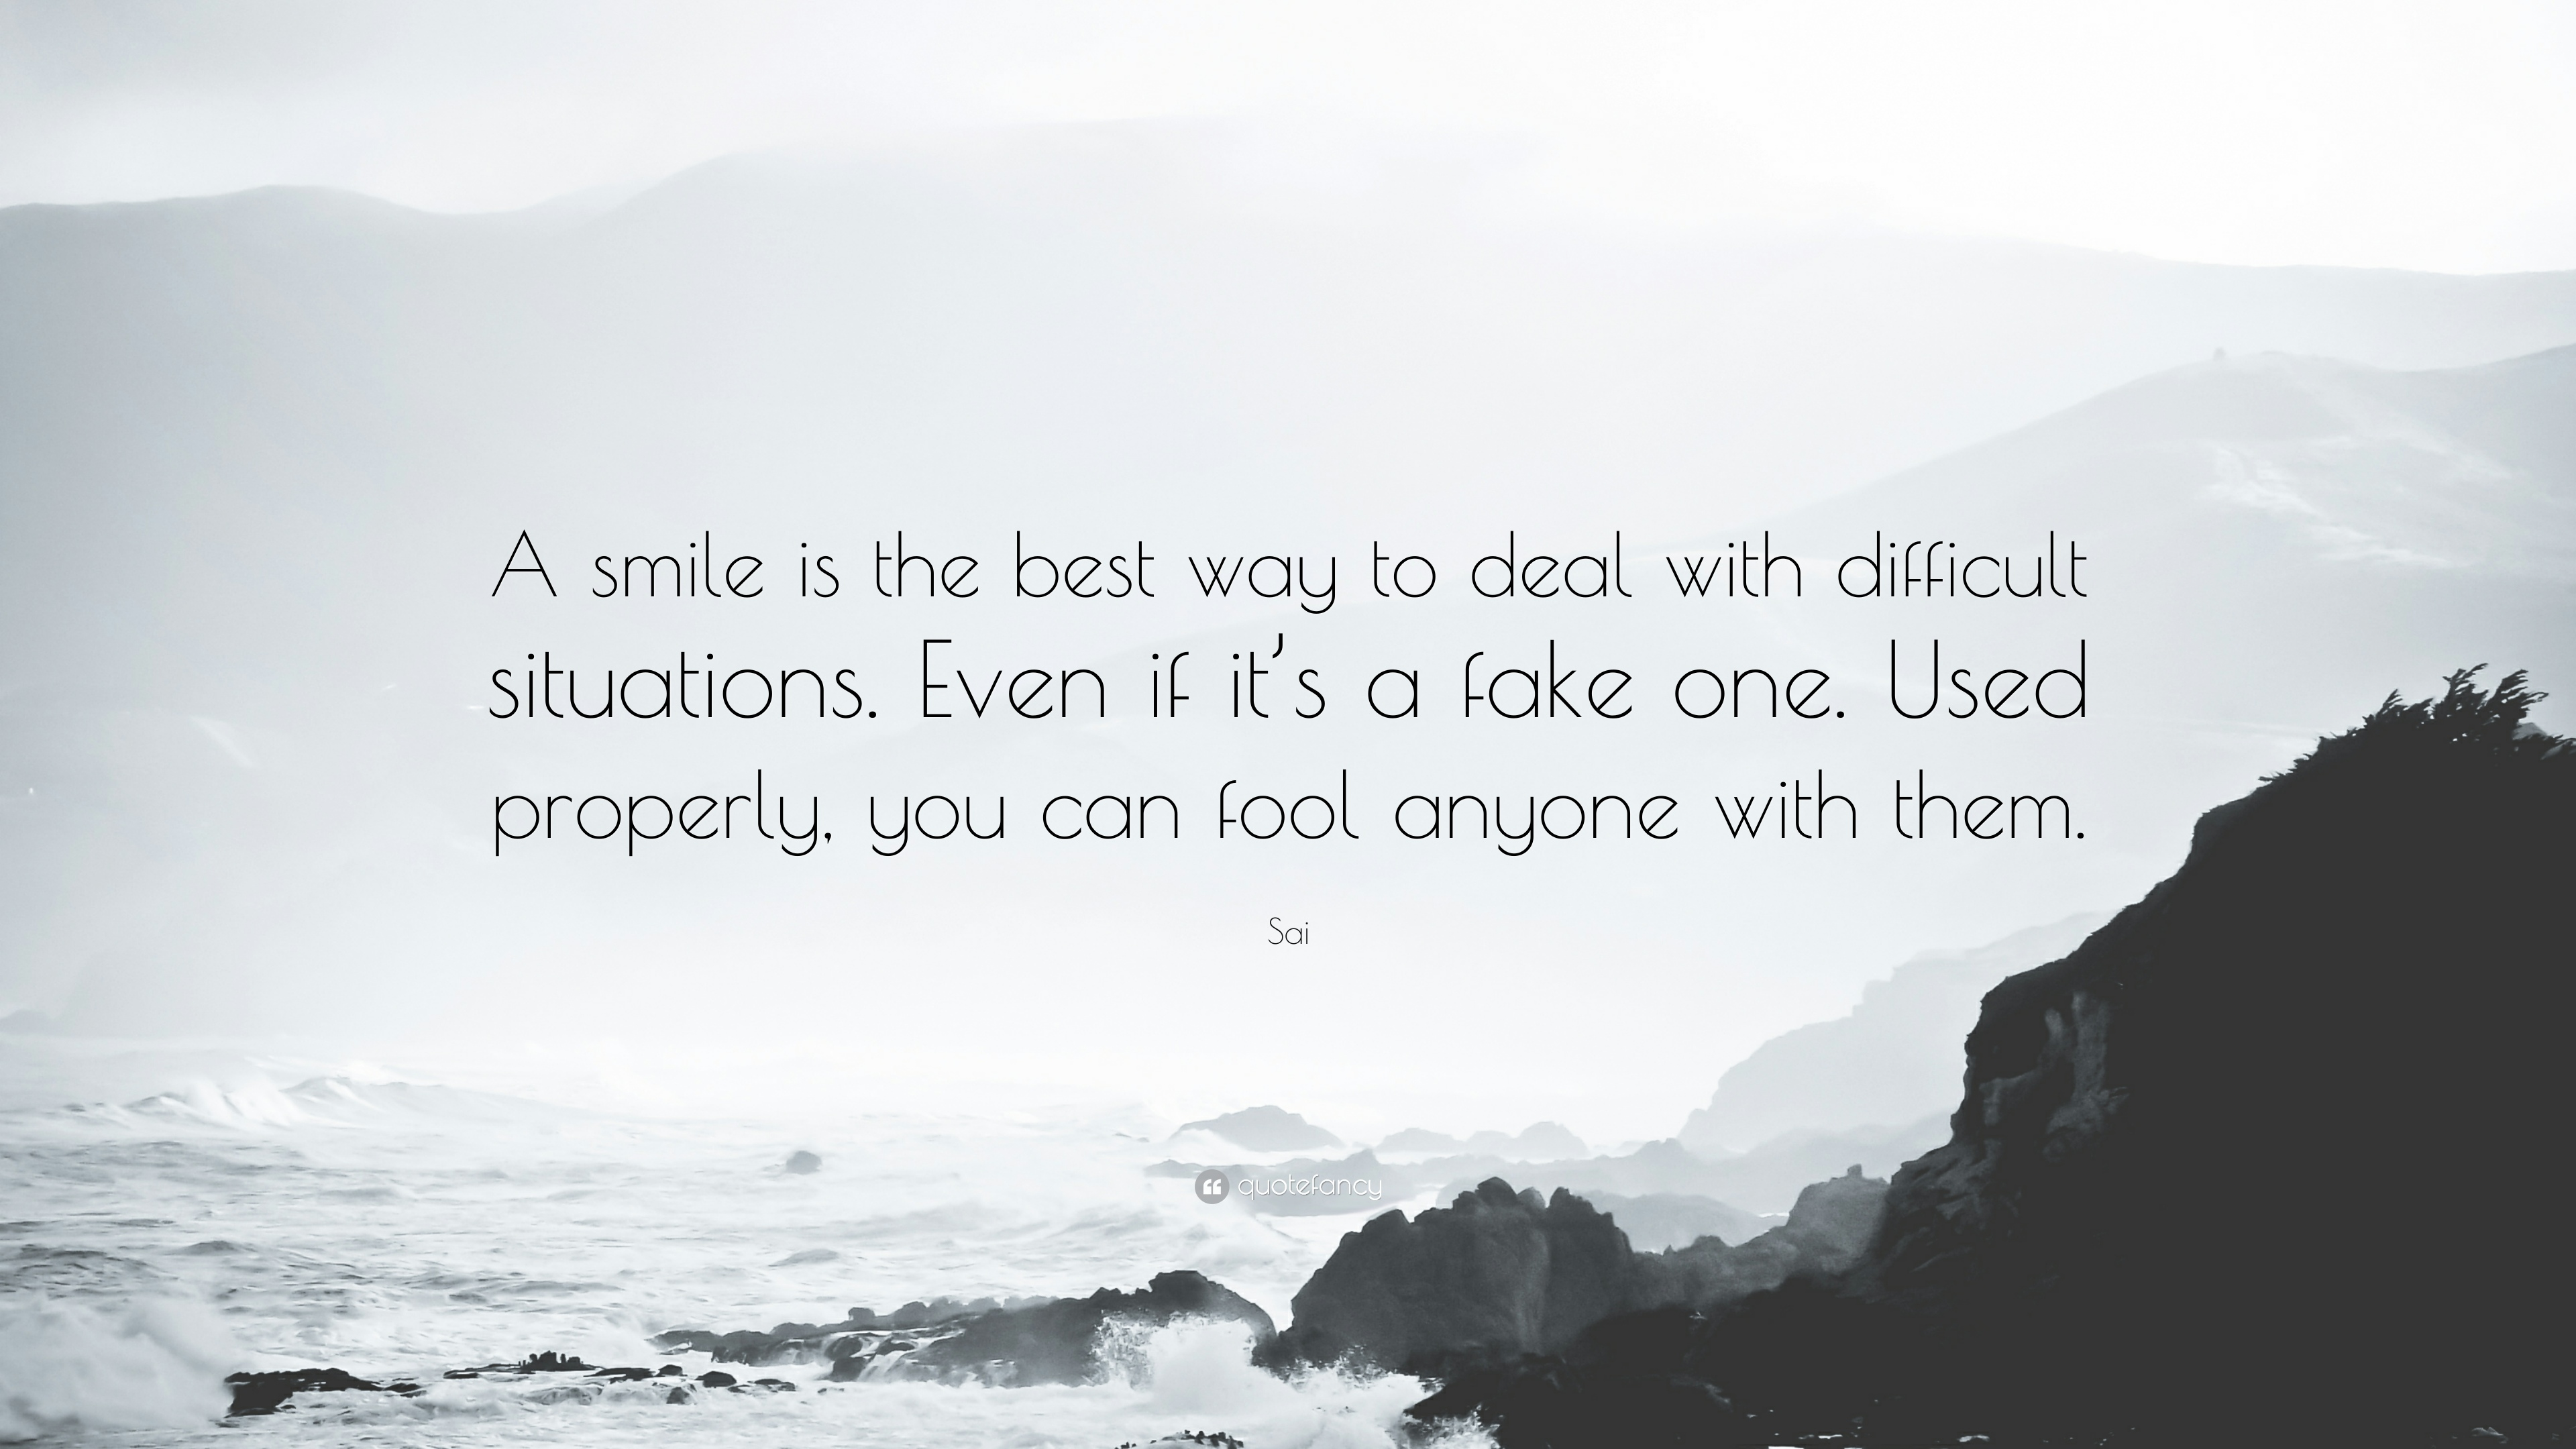 sai quote a smile is the best way to deal difficult sai quote a smile is the best way to deal difficult situations